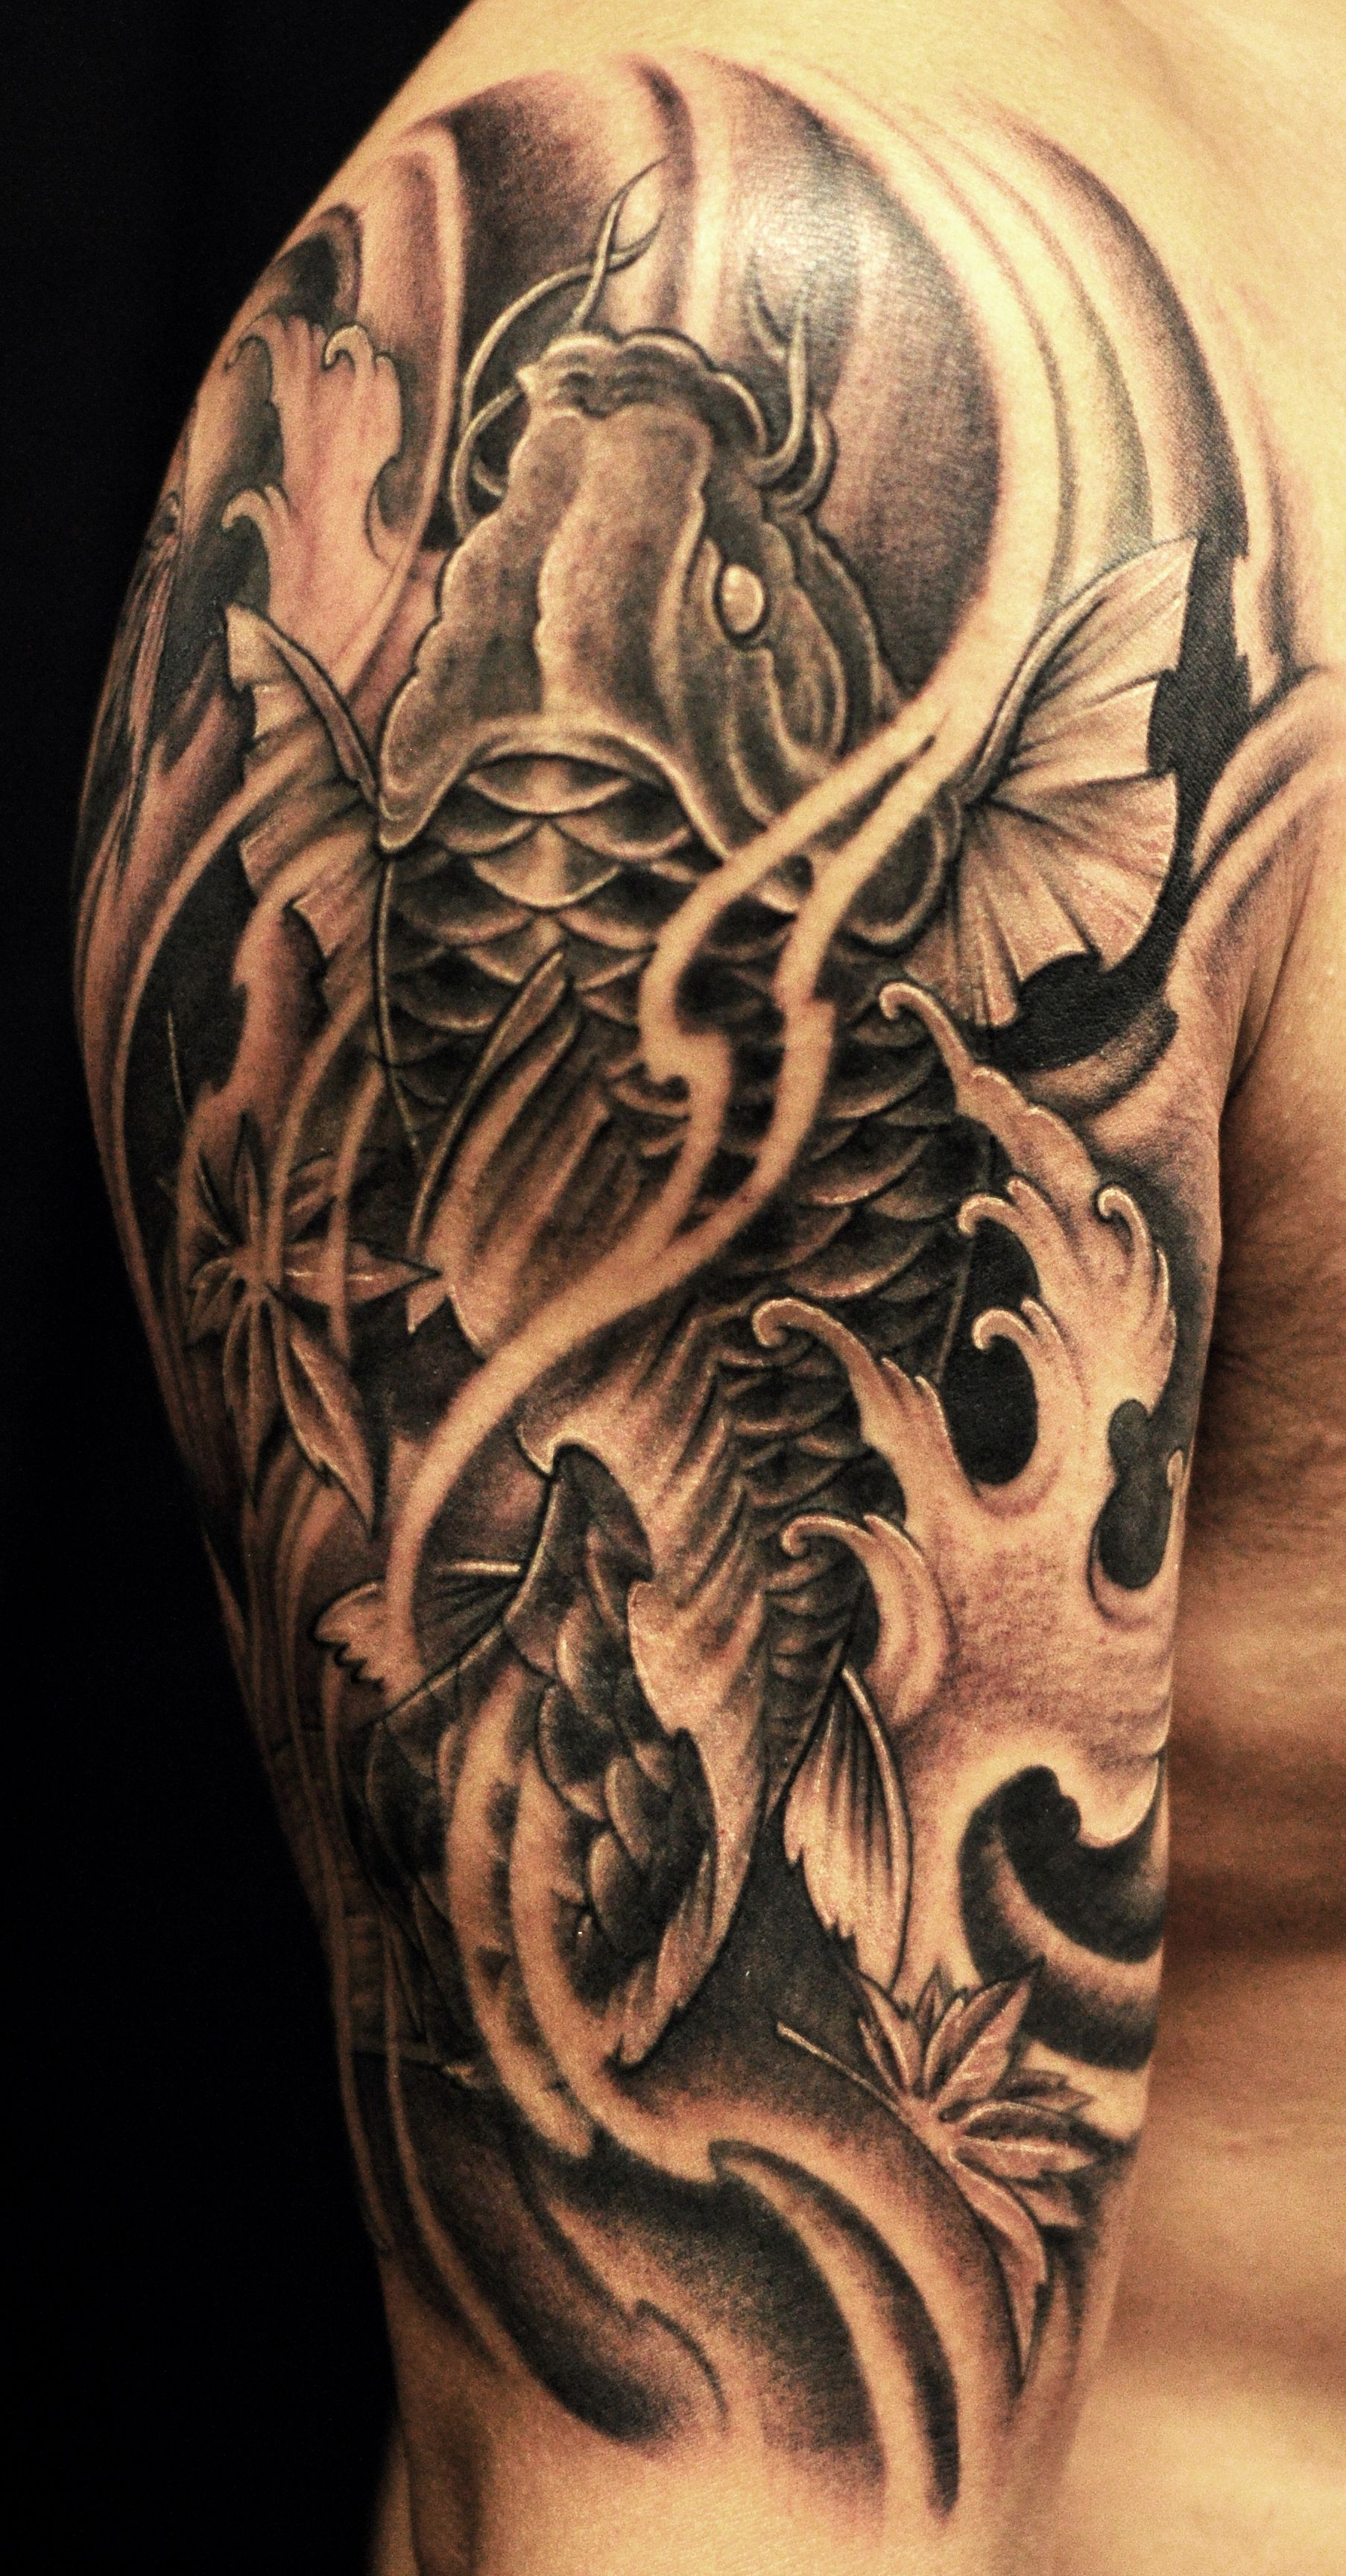 21 Awesome Koi Fish Tattoo Designs Ideas: Koi Fish Tattoo Sleeve Wallpaper